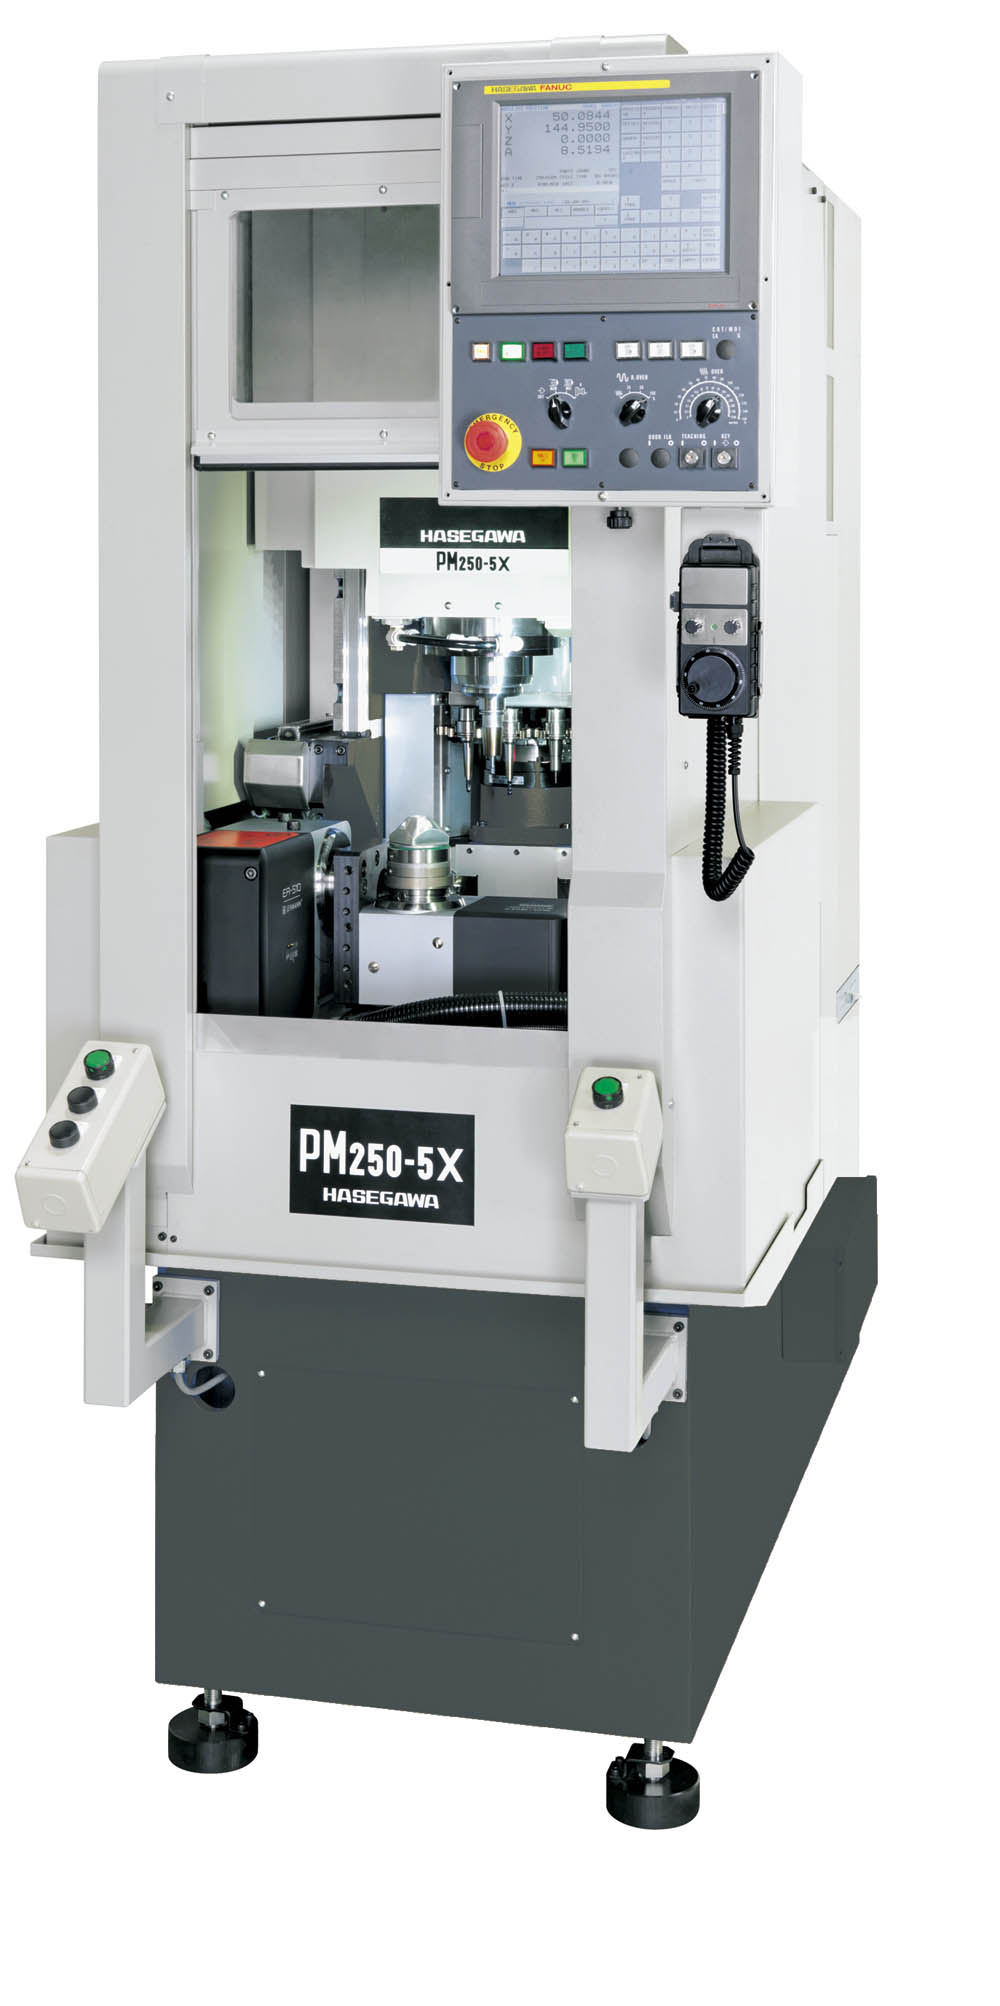 HASEGAWA PM-250/5X Ultra Compact PM Series Milling Center